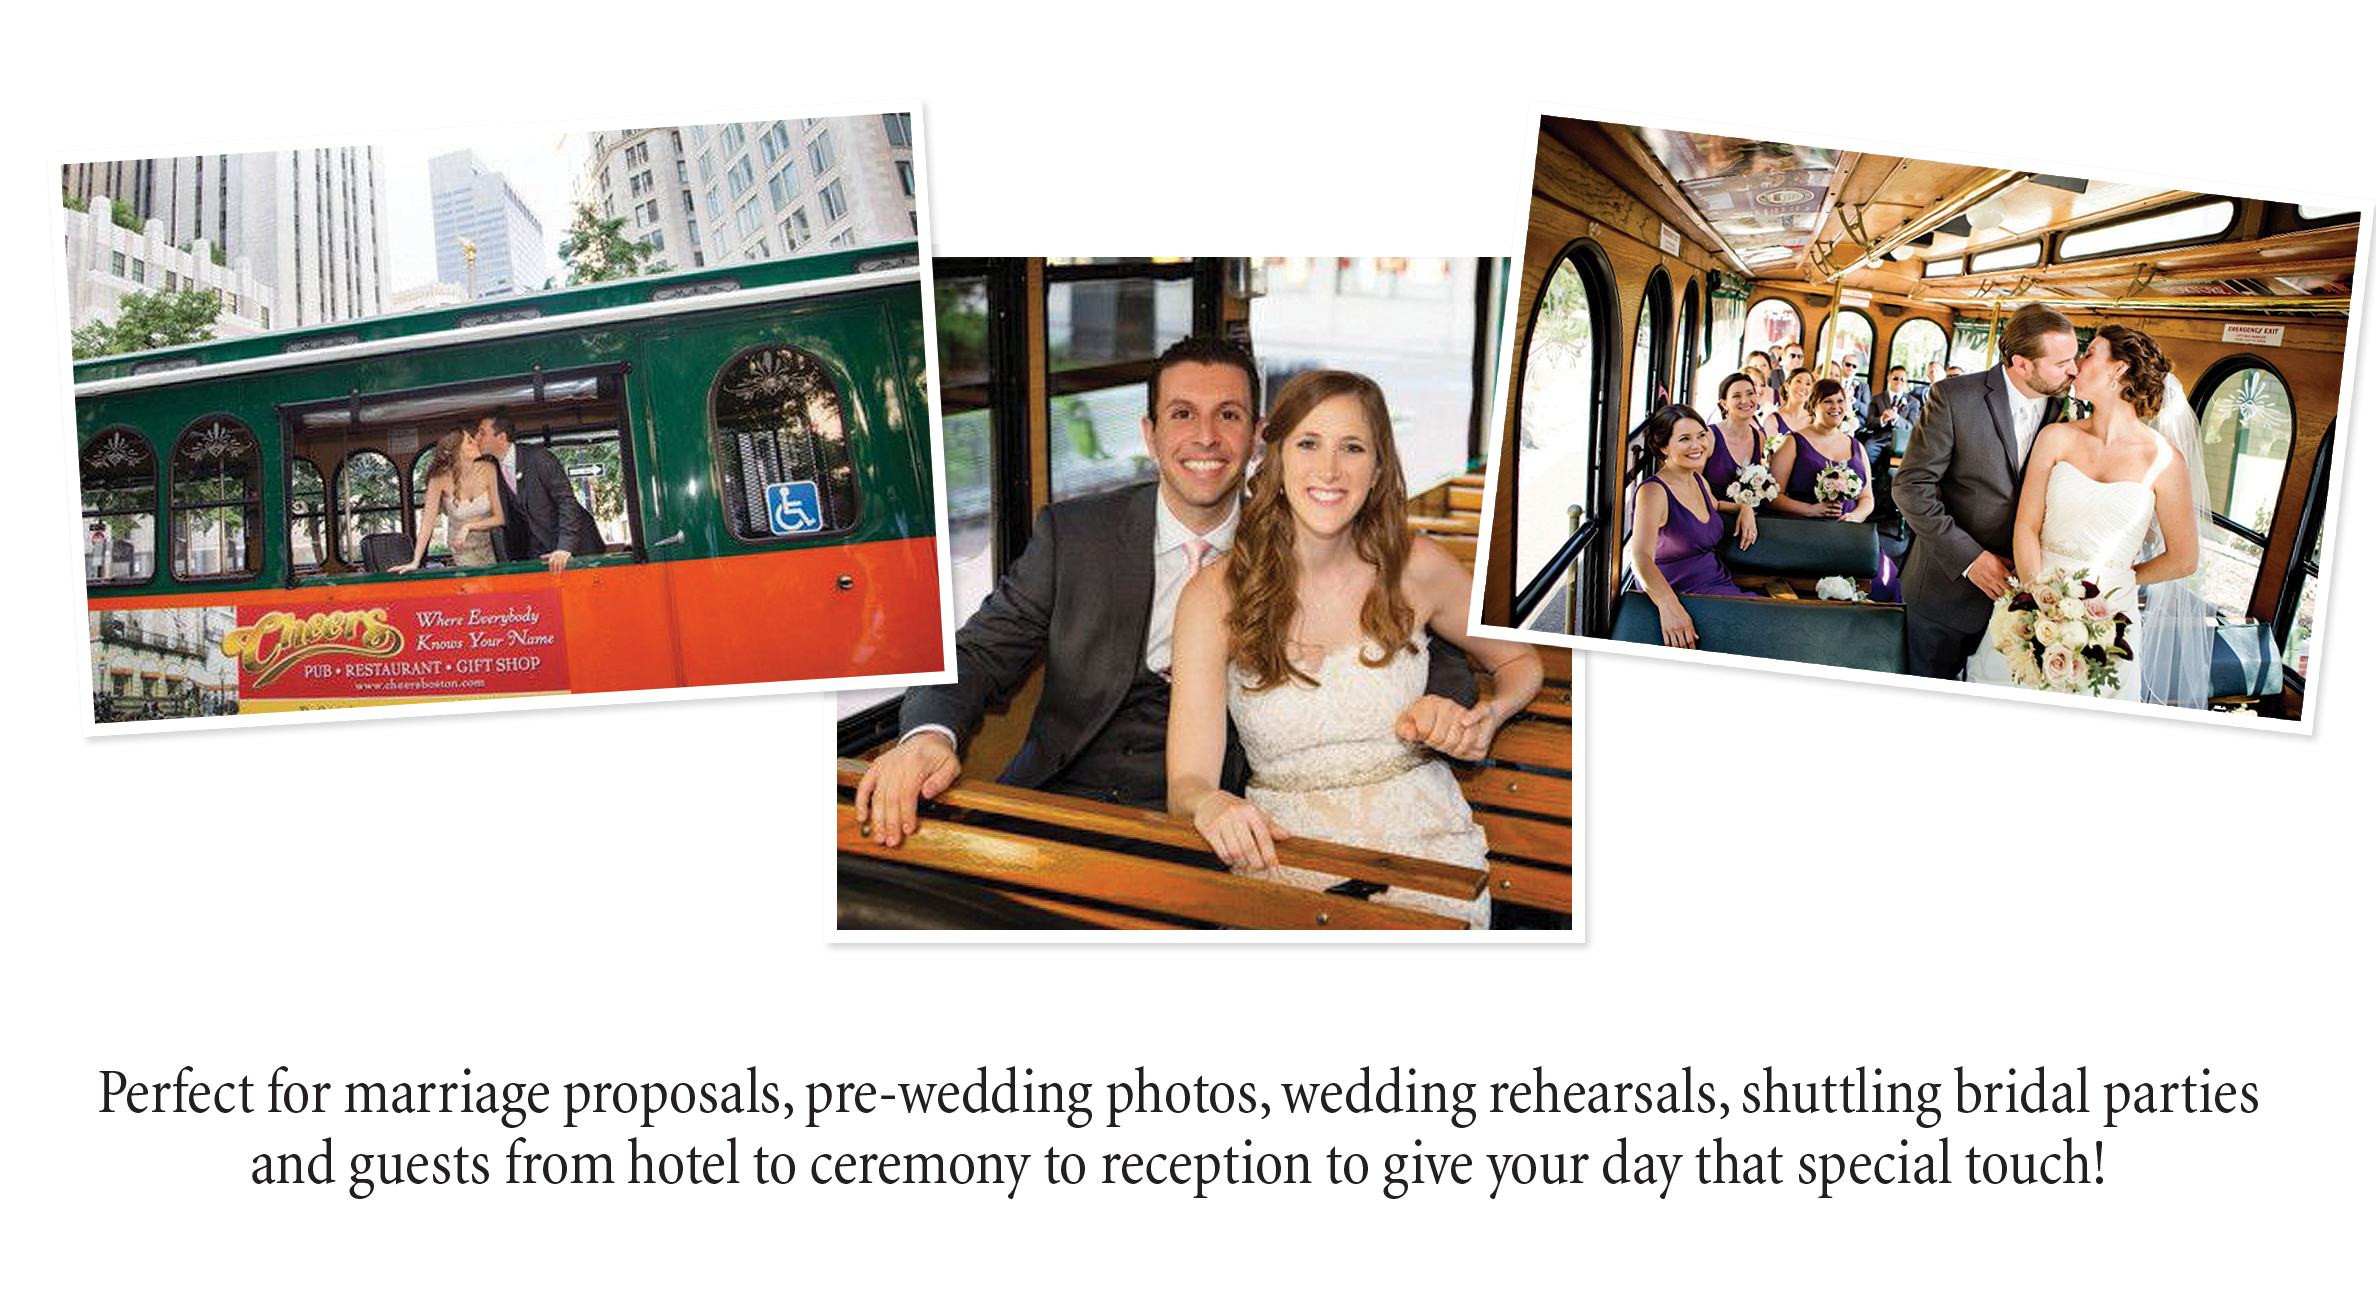 pictures of wedding couple kissing inside trolley and sitting inside trolley and the words 'Perfect for marriage proposals, pre-wedding photos, wedding rehearsals, shuttling bridal parties and guests from hotel to ceremony to reception to give your day that special touch!'